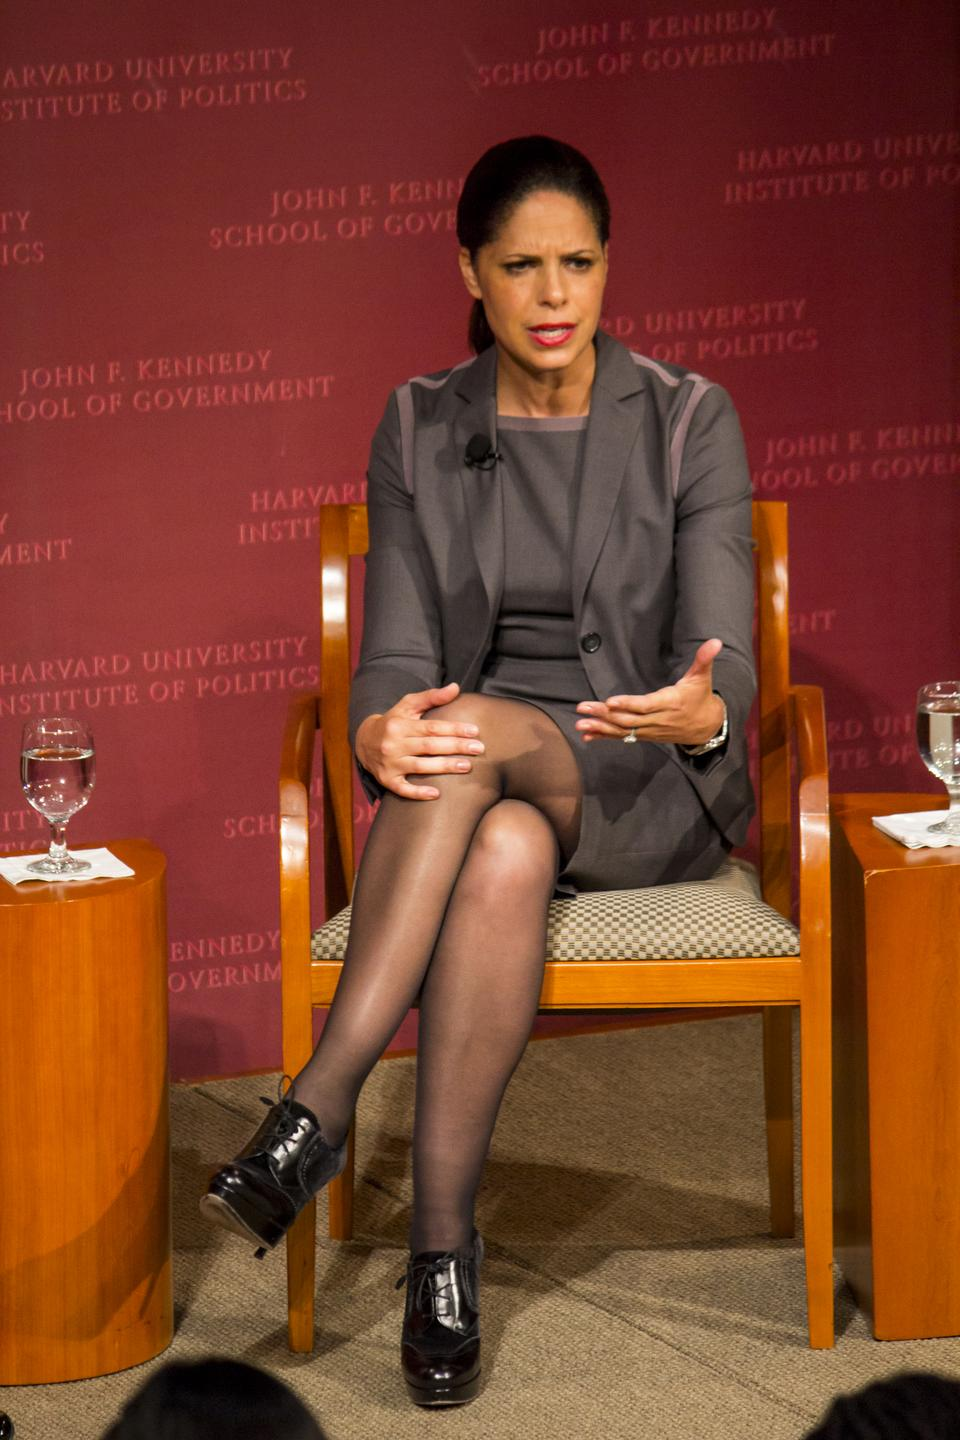 Broadcast journalist Soledad M. O'Brien '88-'00 speaks at the Institute of Politics on May 4. O'Brien will deliver remarks as the Class Day speaker for the Class of 2013.